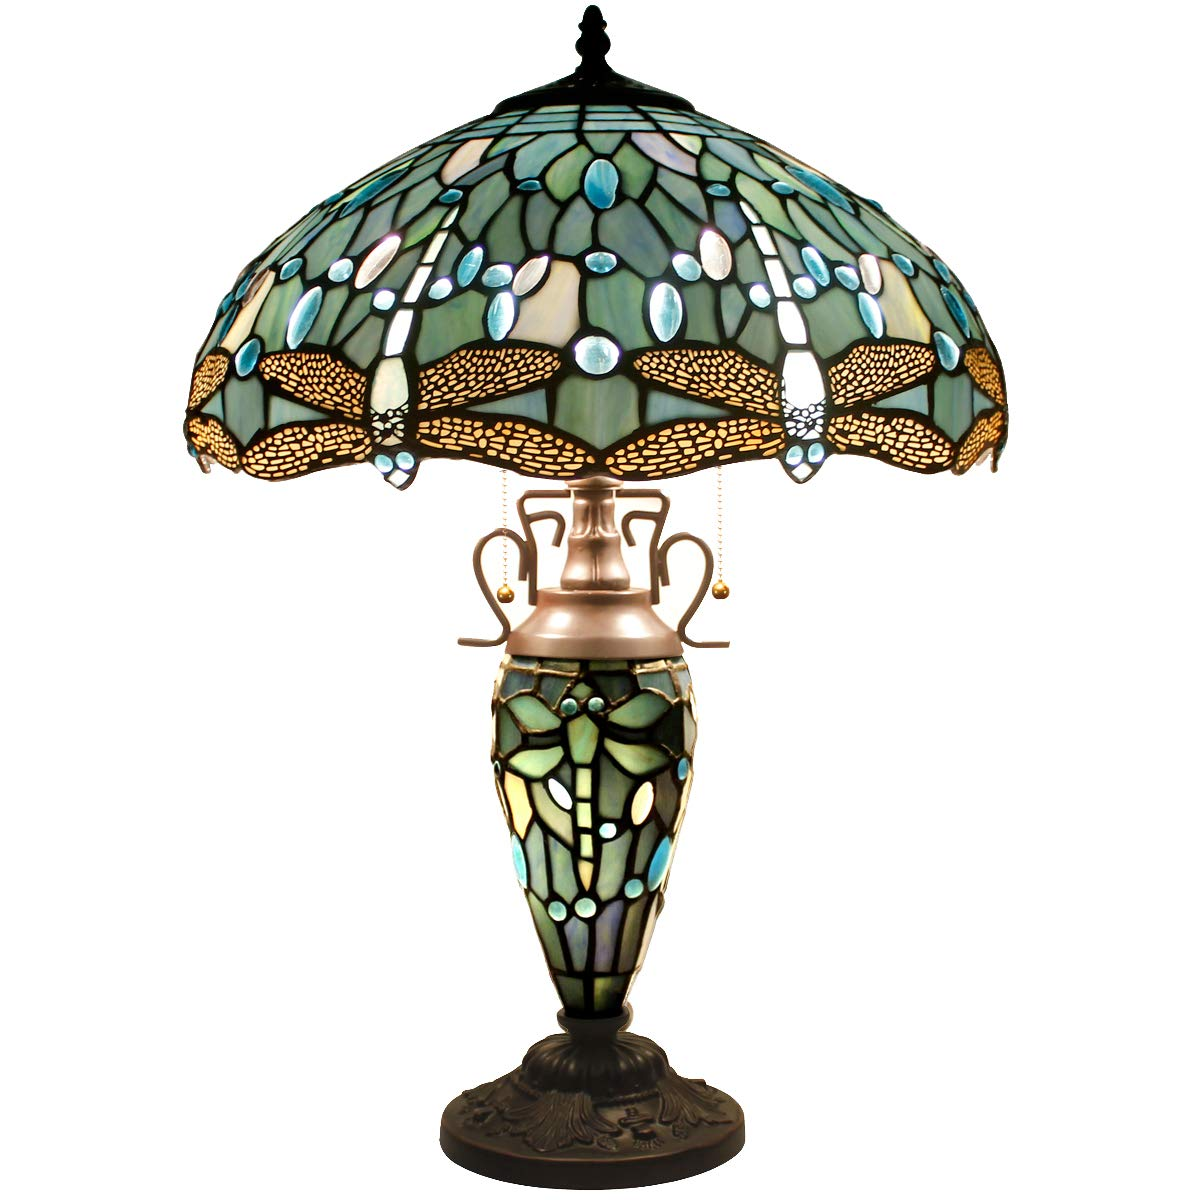 Tiffany Lamp 24 Inch Tall 3 Light Pull Chain Sea Blue Stained Glass Dragonfly Style Lampshade Beside Desk Table Lamp Antique Night Light Base for Living Room Coffee Table Bedroom S147 WERFACTORY